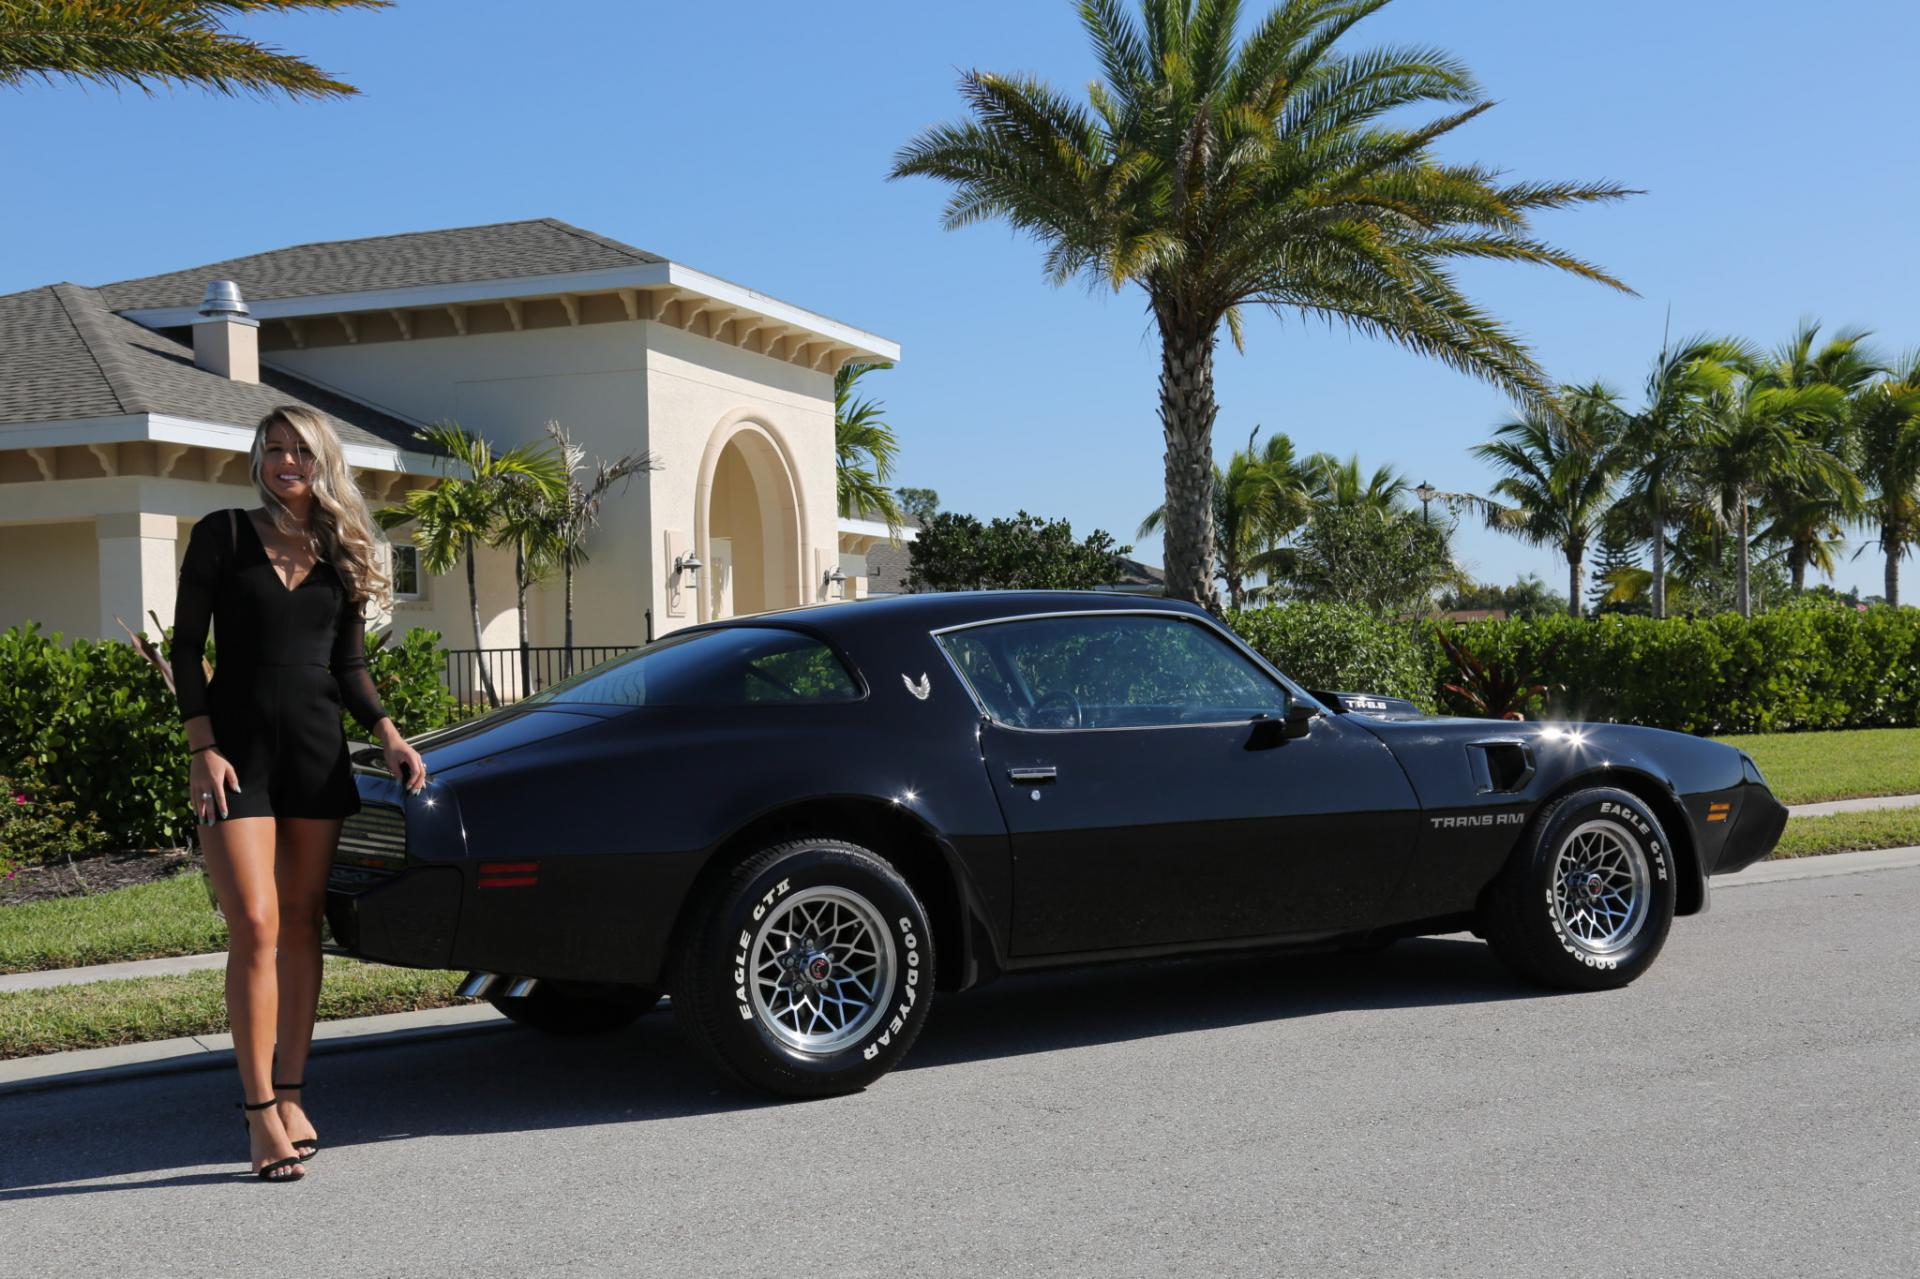 Used 1980 Pontiac Trans Am for sale Sold at Muscle Cars for Sale Inc. in Fort Myers FL 33912 3